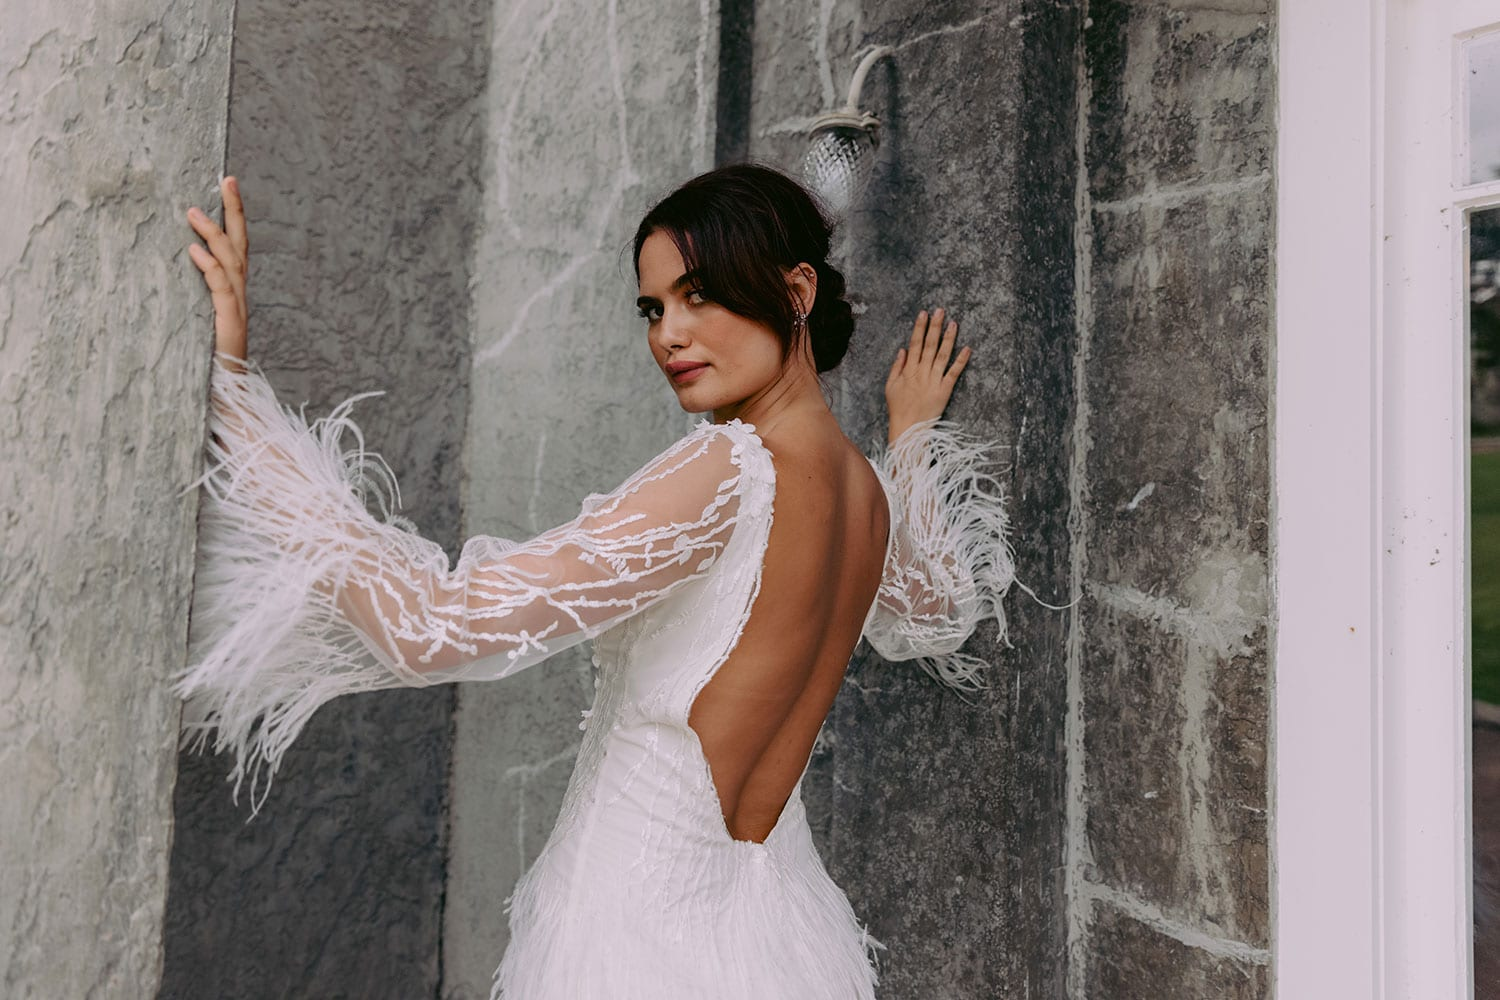 Nikora Wedding gown from Vinka Design - This sexy gown is sure to turn heads! Adorned with feathers that accentuate movement and bell sleeves that add flare, a high neckline, and low back. Model wearing gown facing away with arms raised showing back of dress and sleeves.